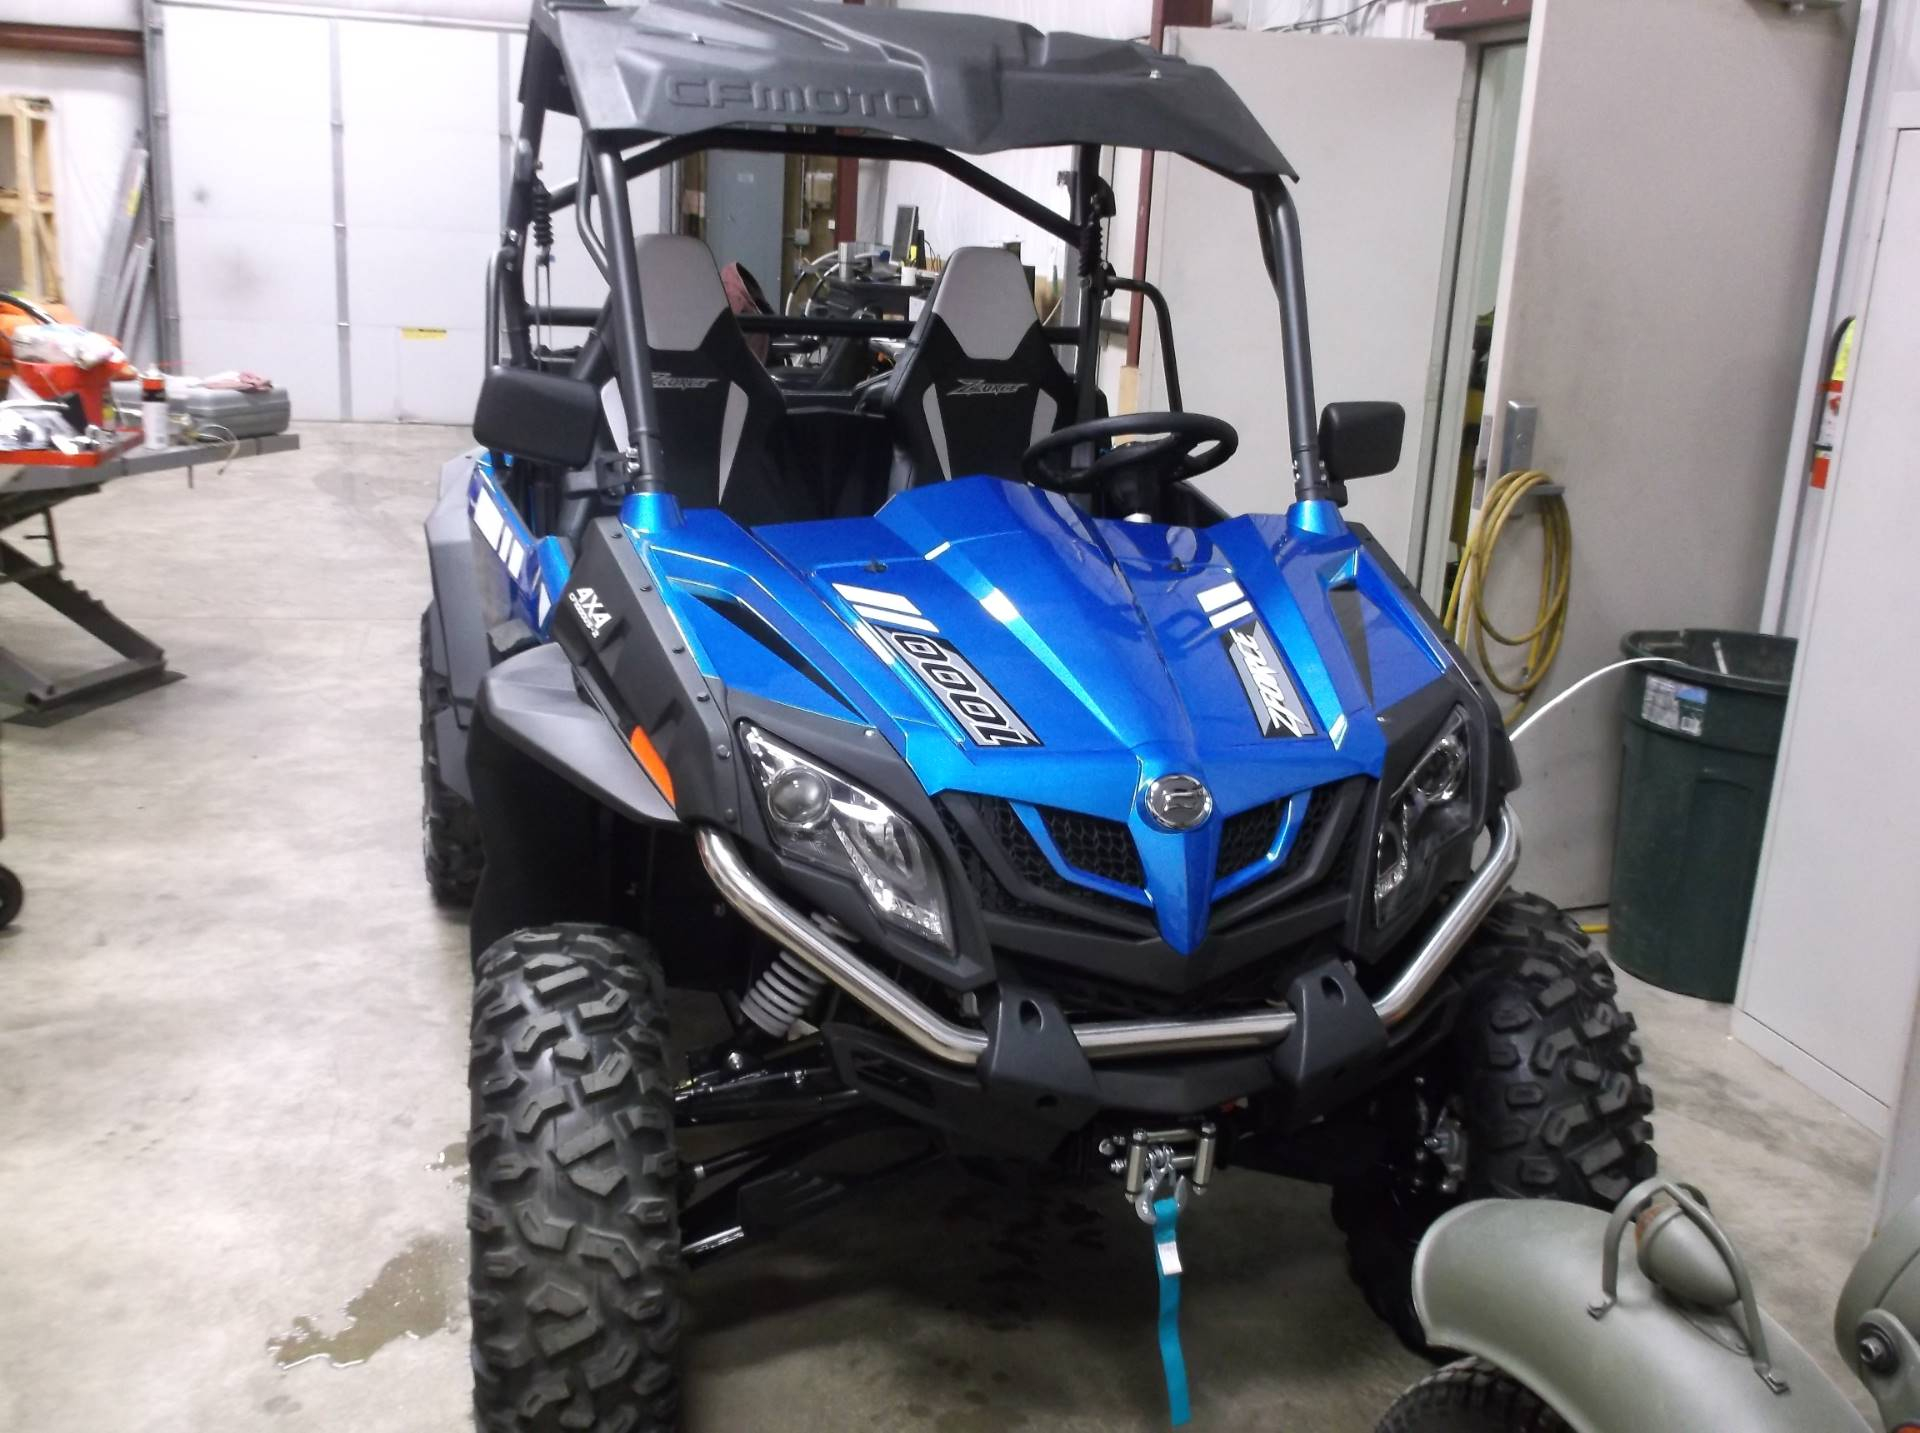 2018 Cfmoto Zforce 1000 Utility Vehicles Sioux City Iowa Cfm000219 Motor Blower Honda All New In